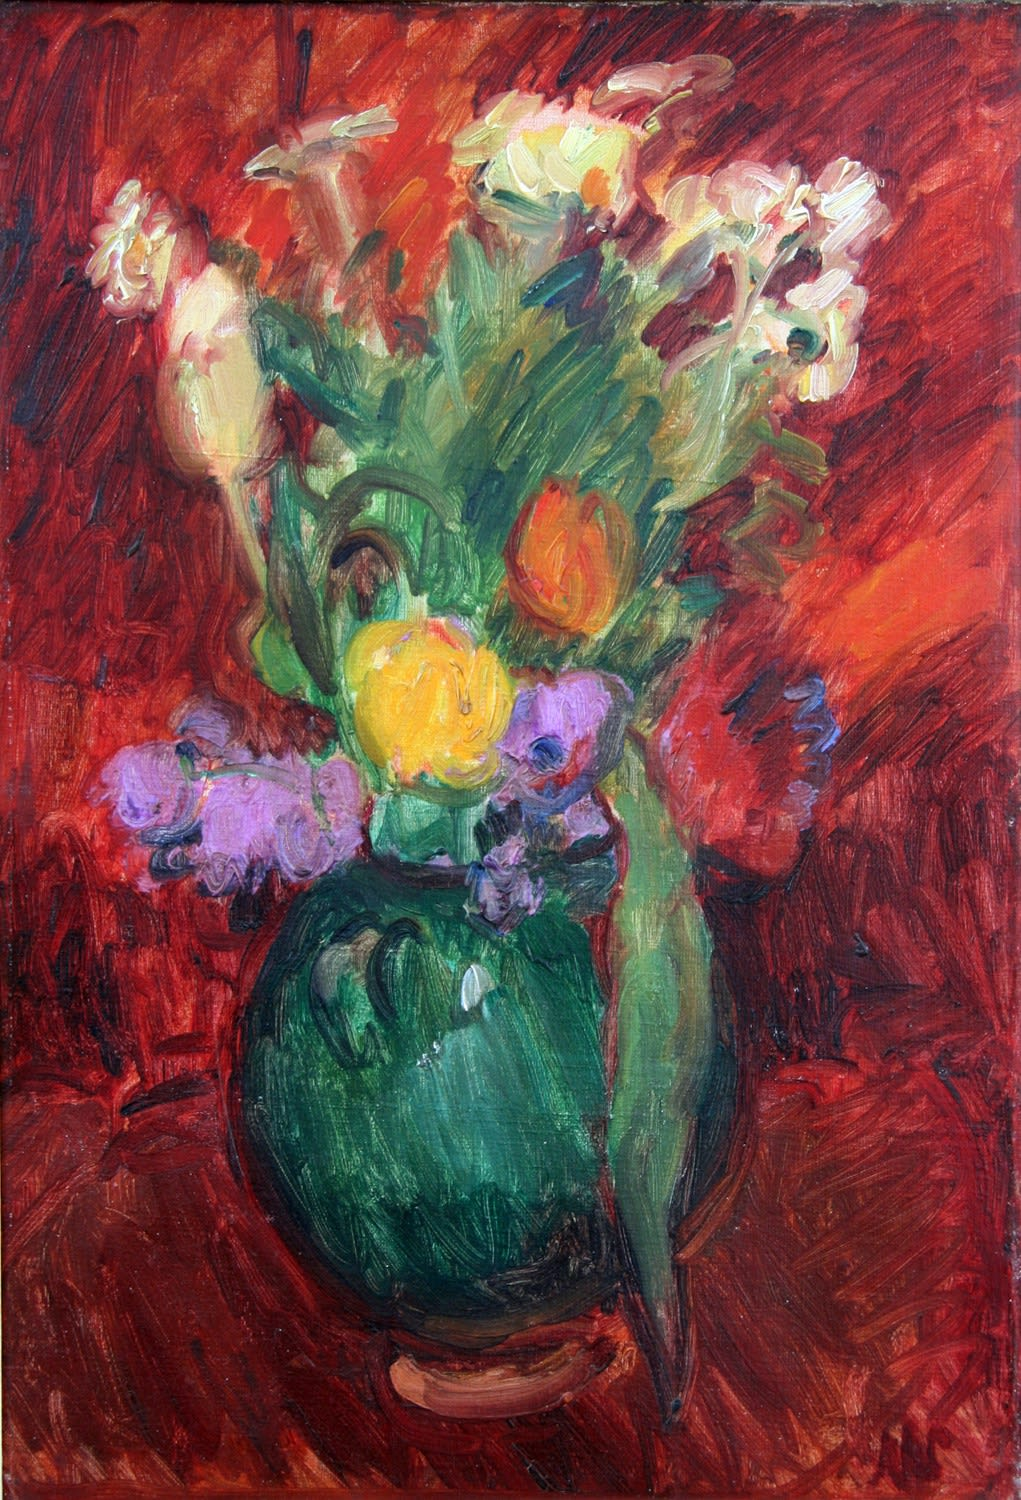 Tulips in a Green Jug, c.1927 oil on canvas 21.5 x 14.75 inches (54.5 x 37.5cm)